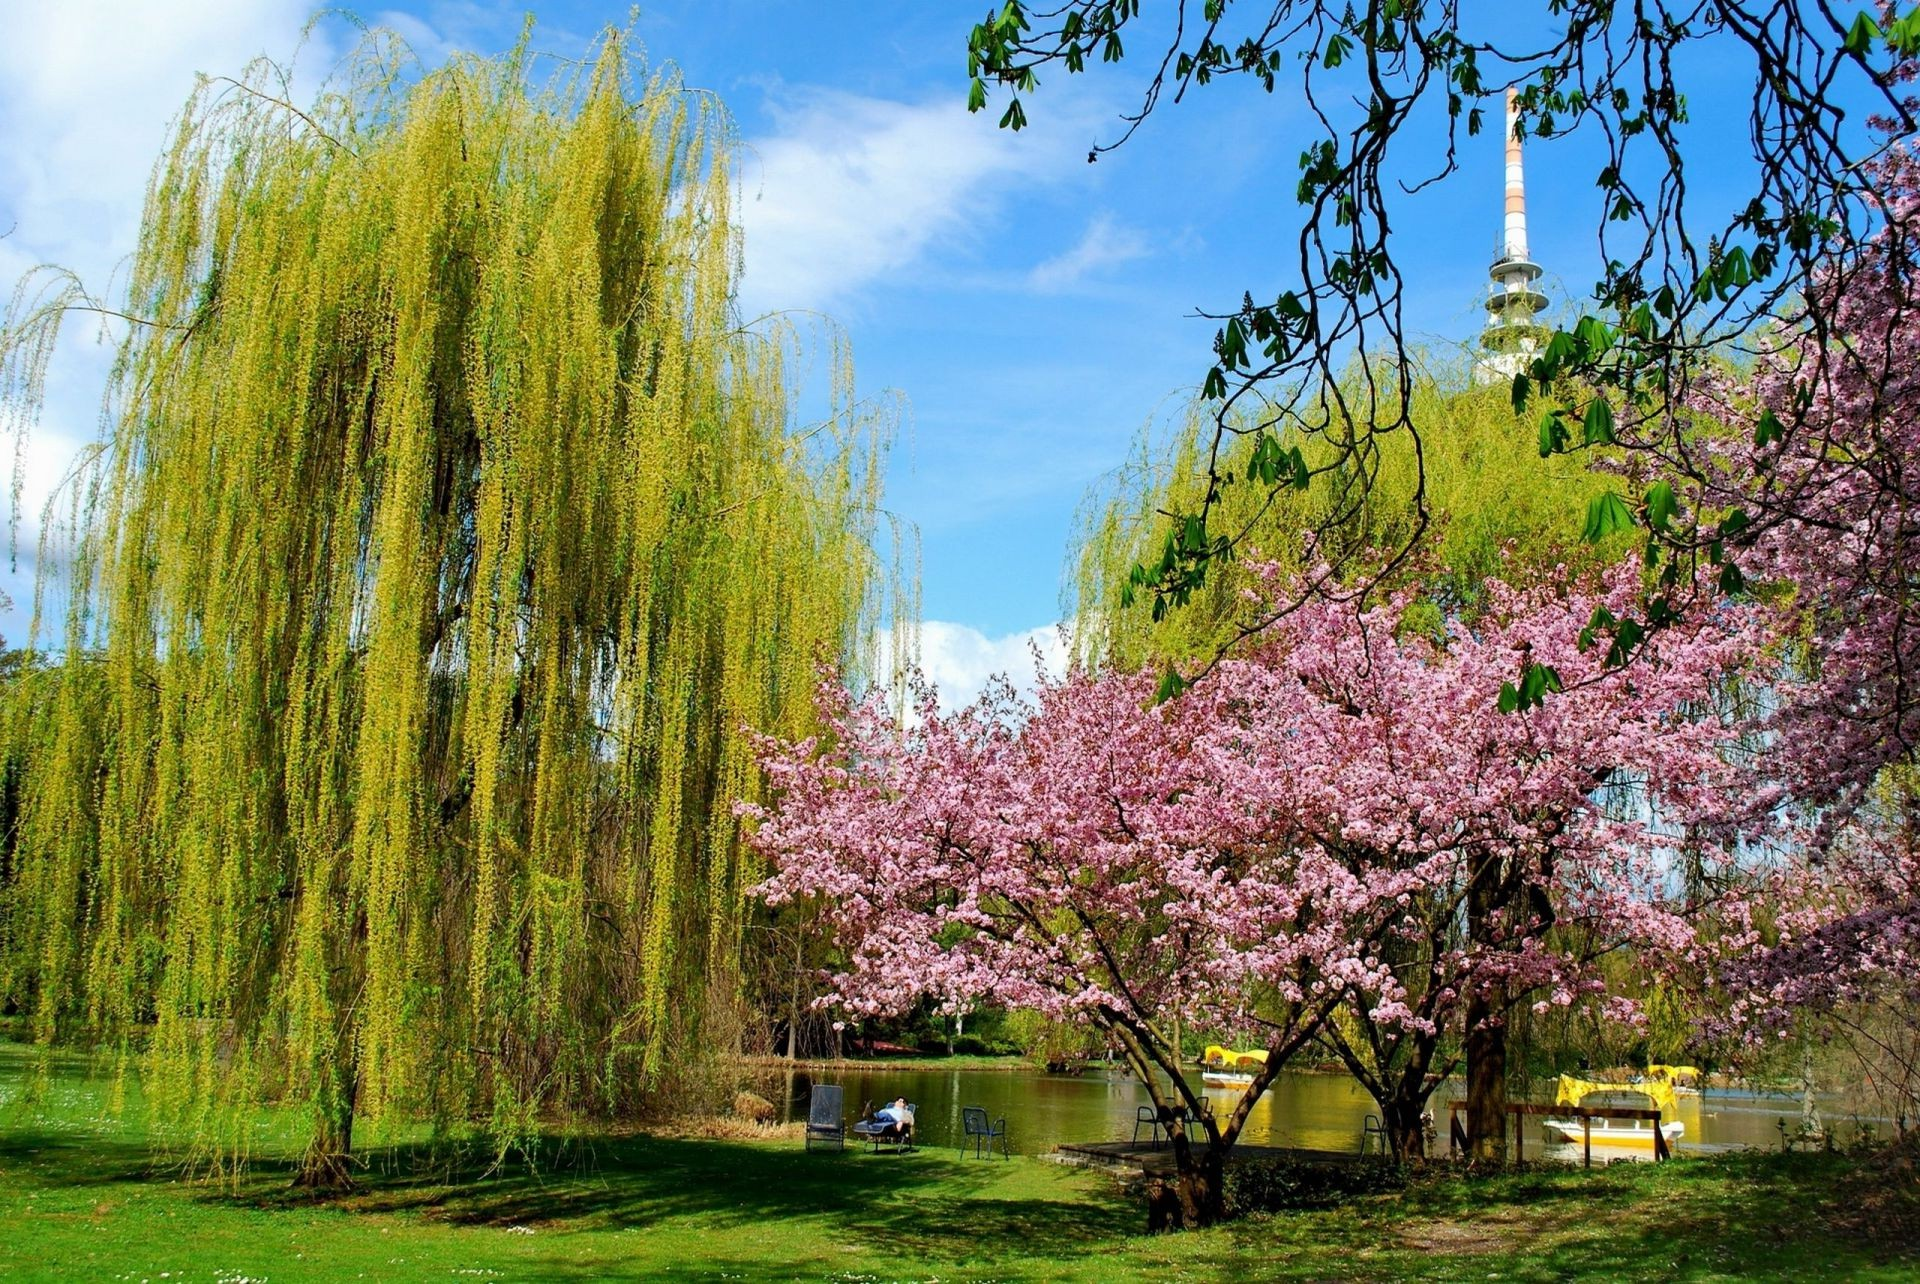 parks tree park season flower nature landscape branch garden flora springtime bright scenery scene leaf scenic cherry environment beautiful outdoors color